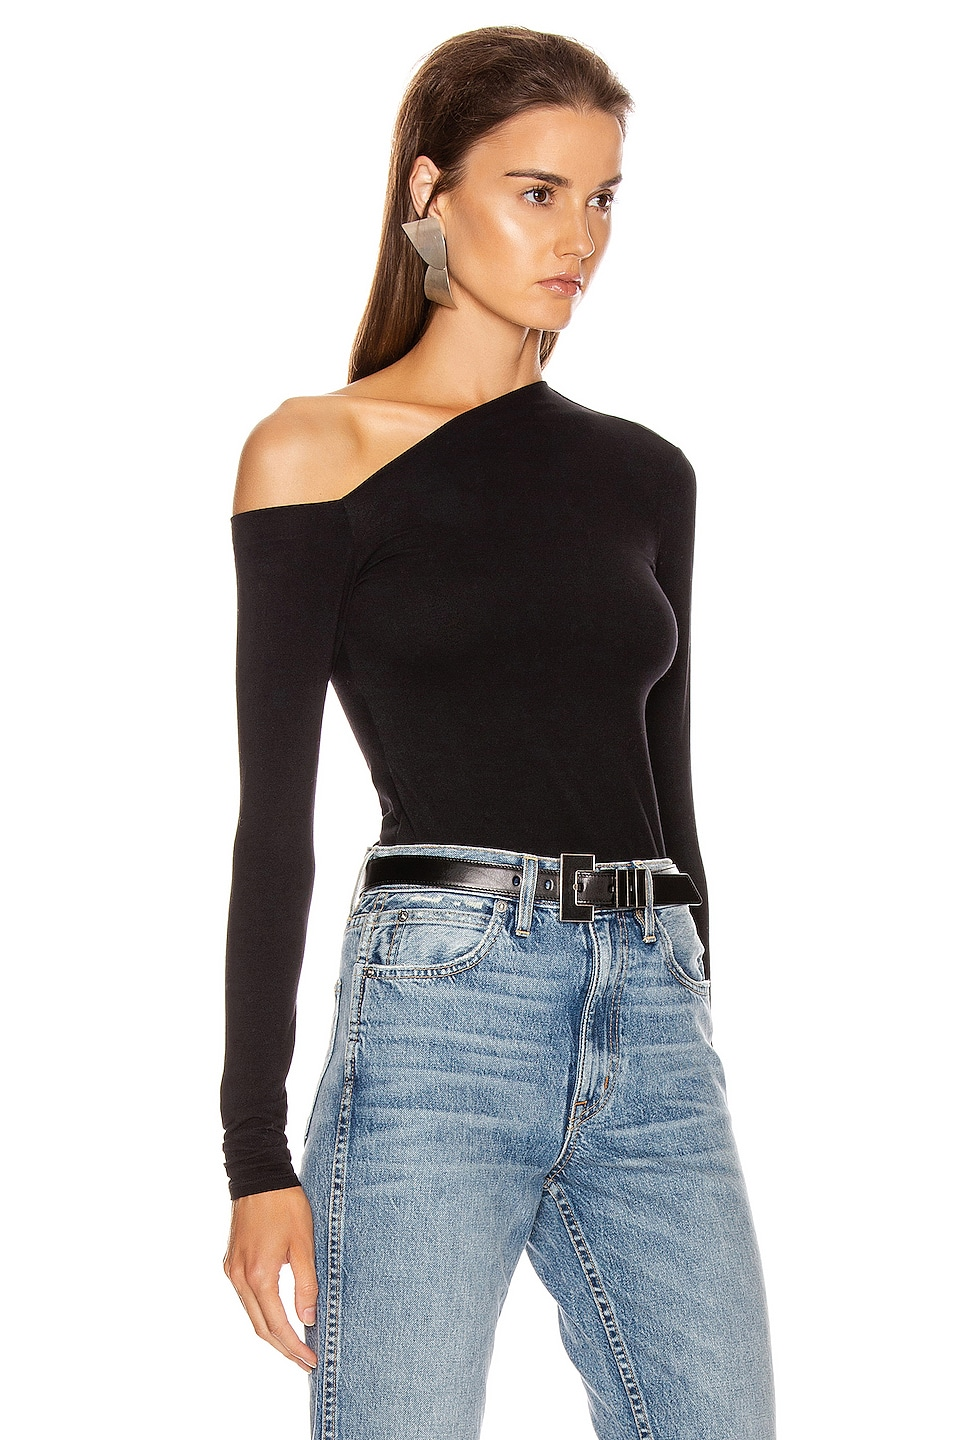 Image 2 of Enza Costa Angled Exposed Shoulder Long Sleeve Top in Black